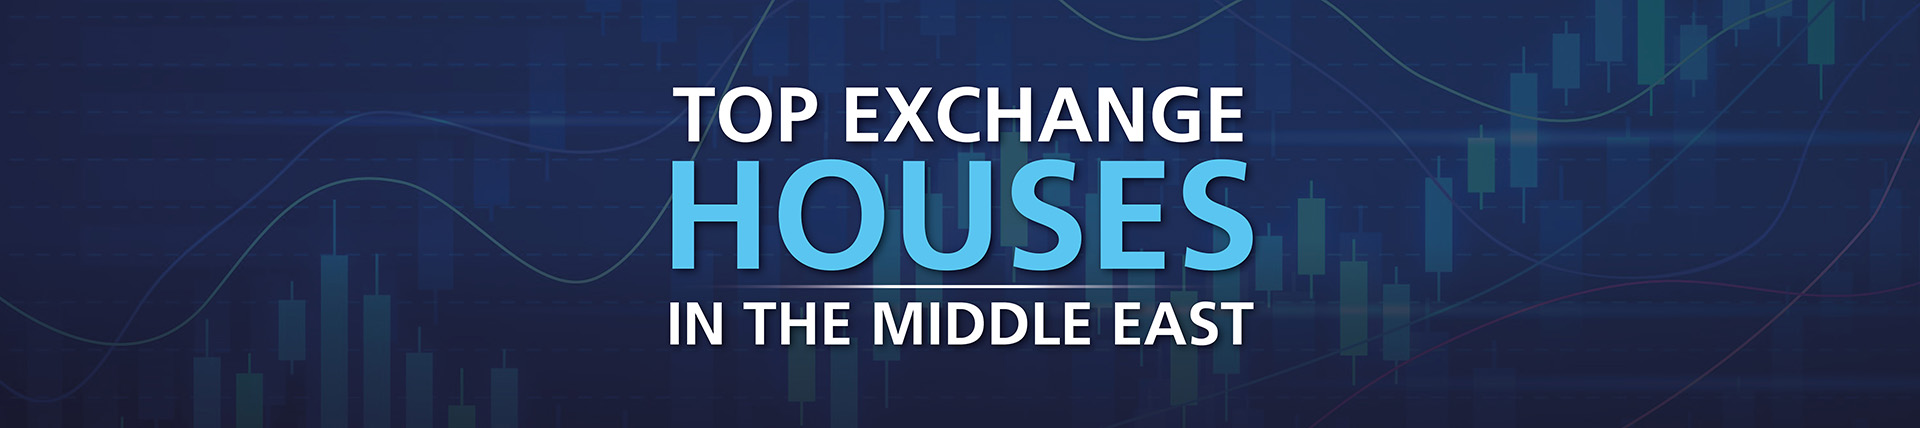 Top Exchange Houses In The Middle East